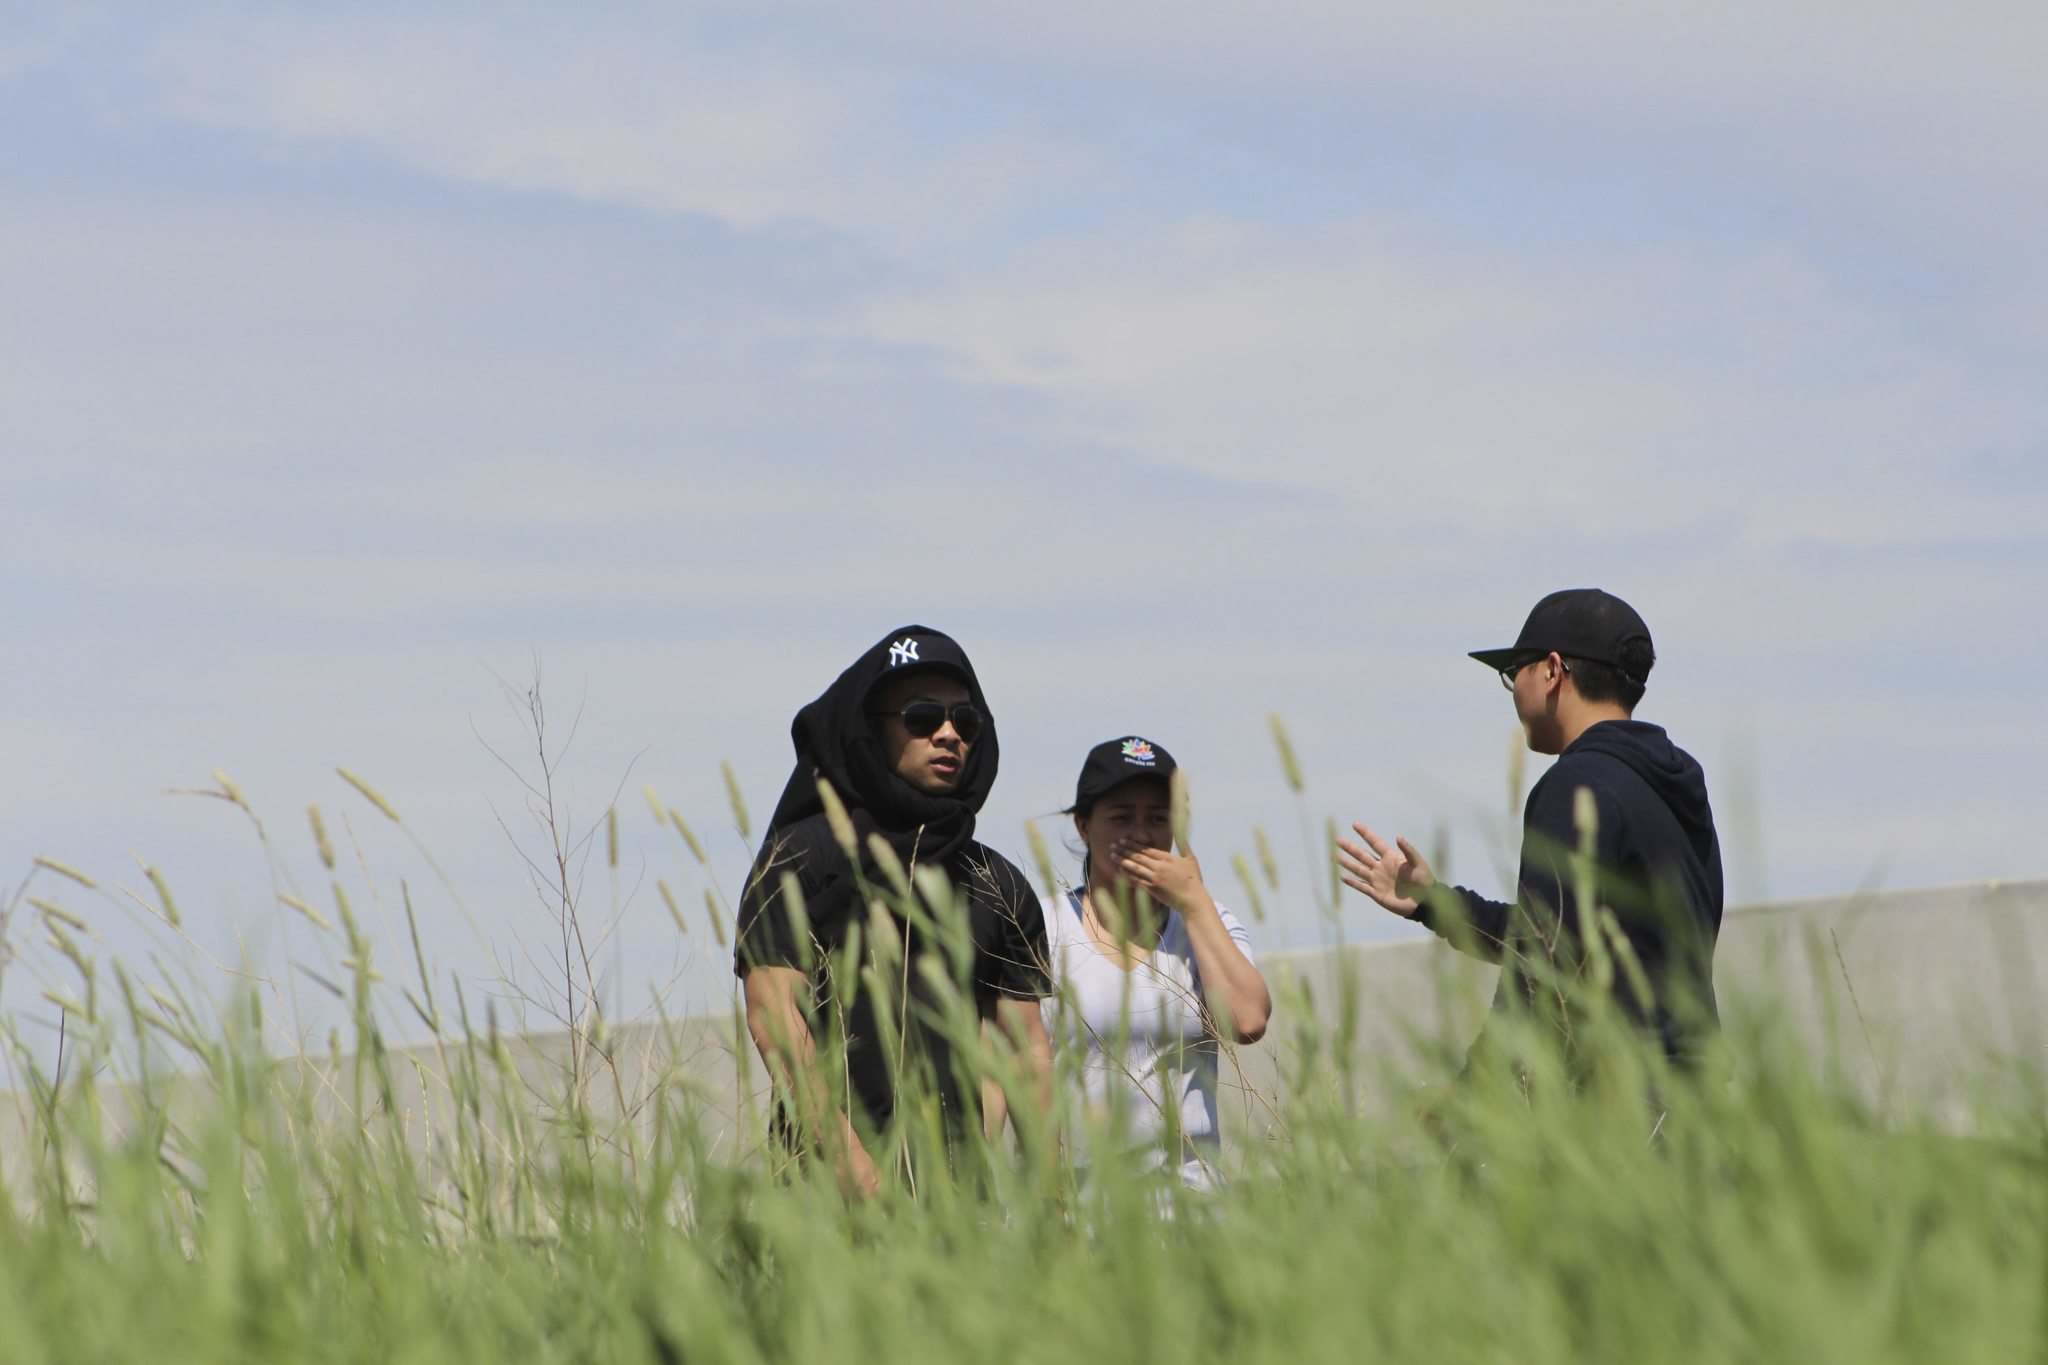 Family members search near Assiniboia Downs near the Perimeter Hwy for missing man Eduardo Balaquit, 59, who disappeared Monday evening. Pictured are Eduardo's sons Erwin, left, and Edward.</p></p>